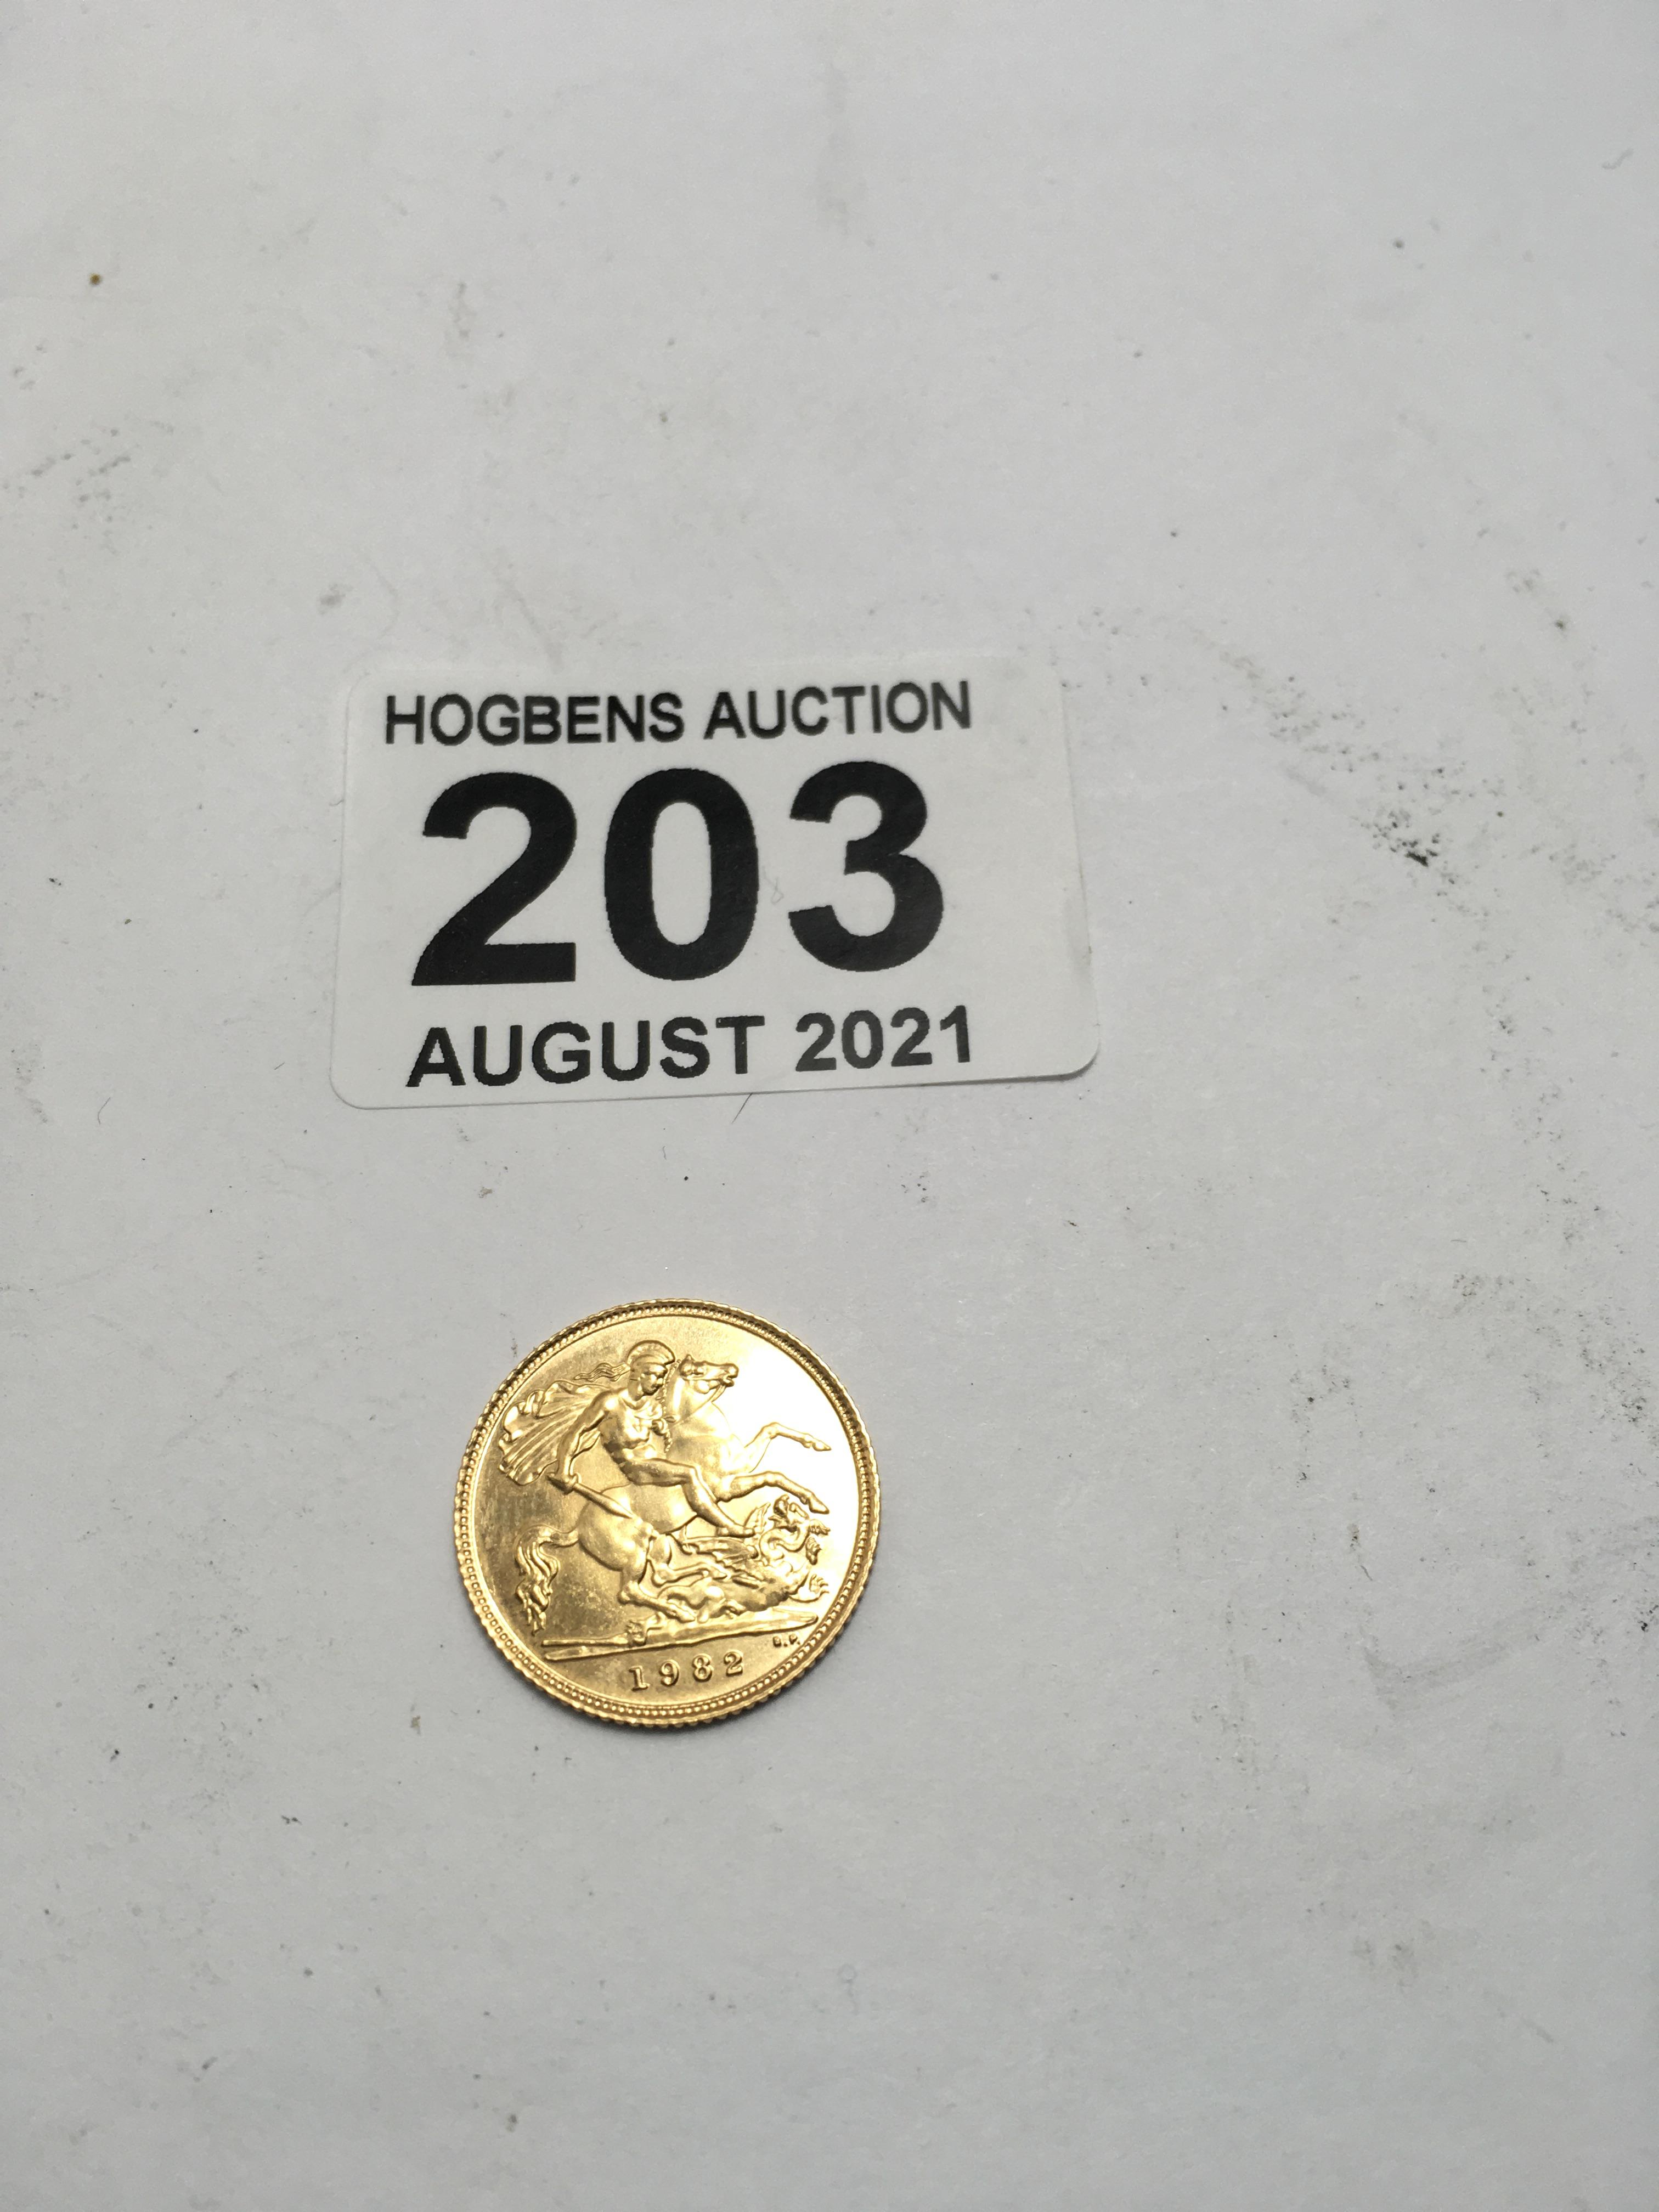 1982 gold half sovereign 1 - Image 3 of 4